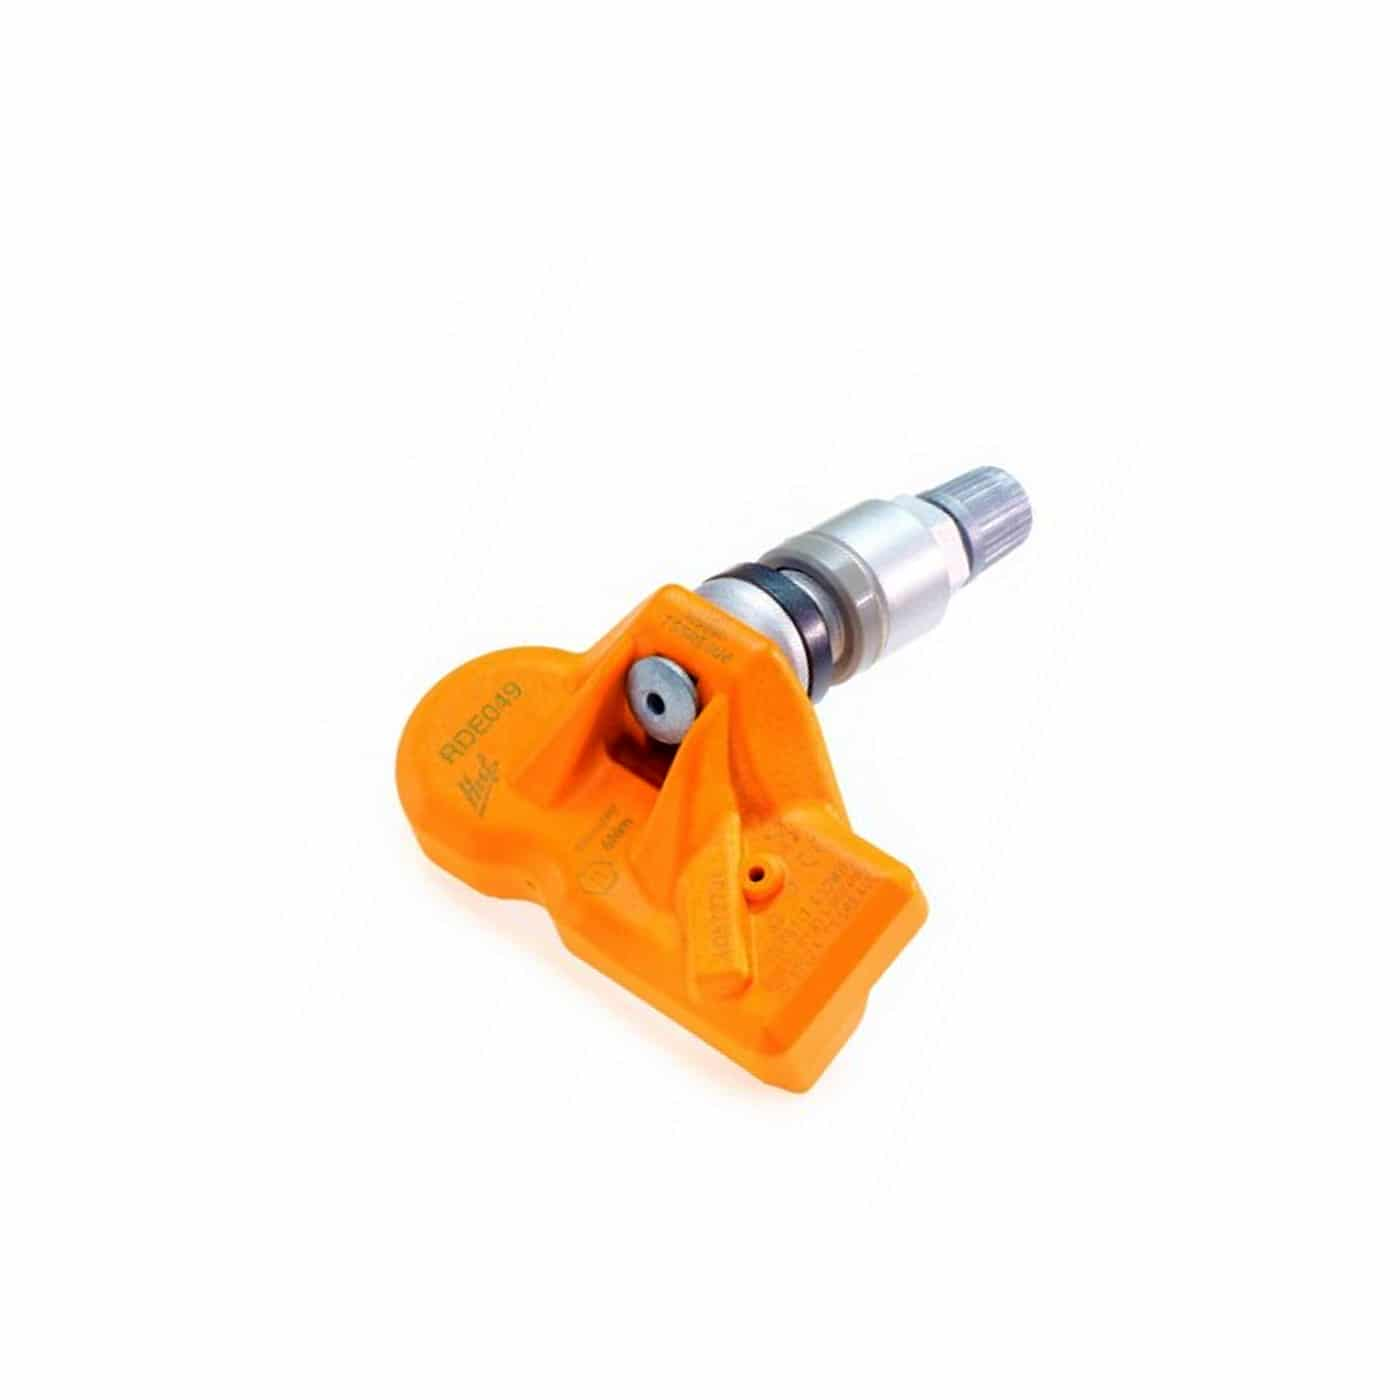 HUF Clamp-in RDE049